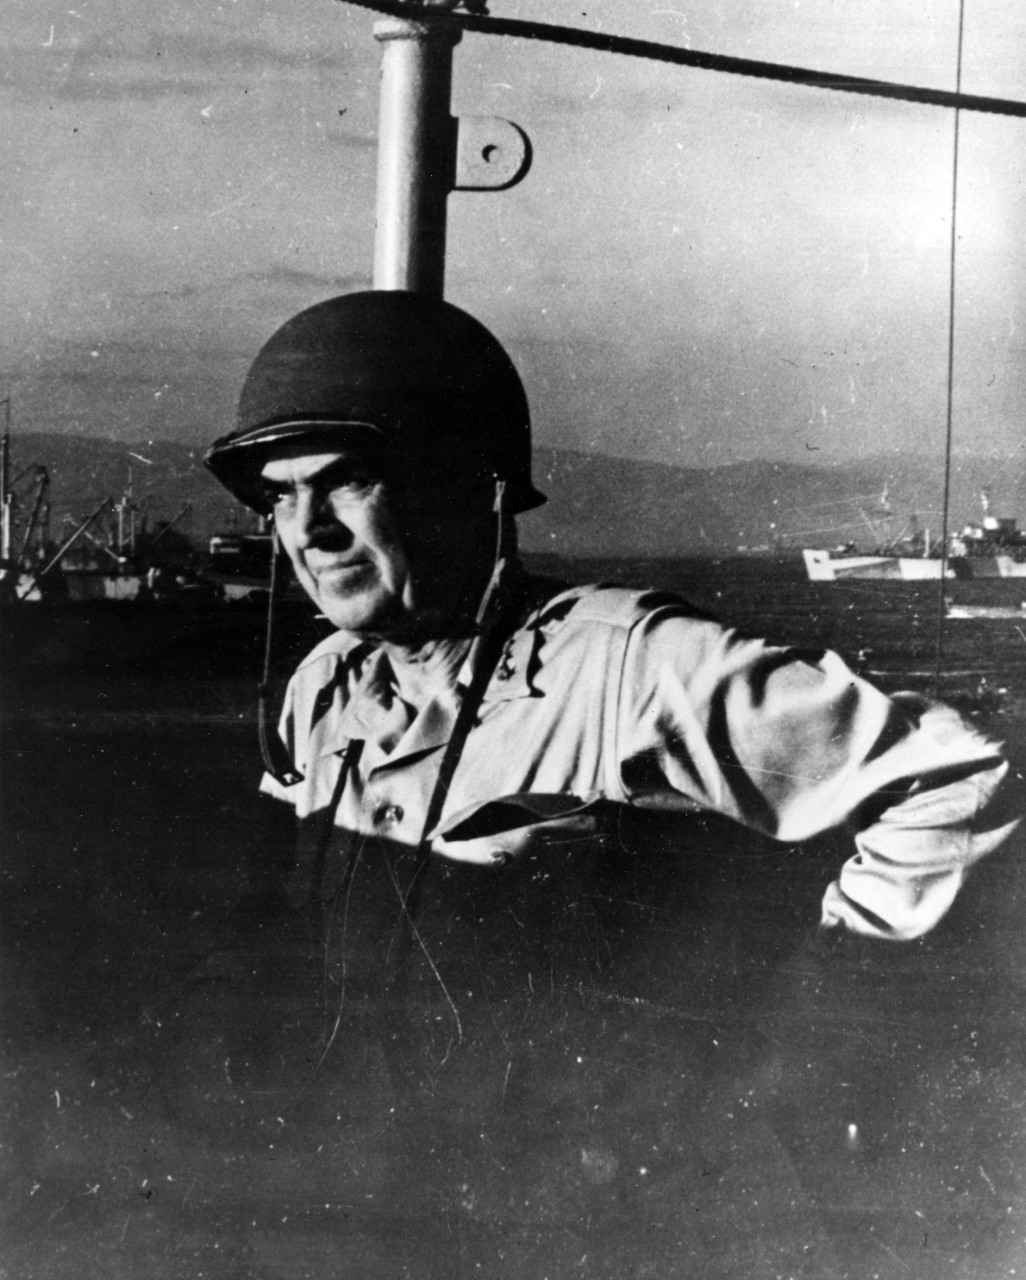 Photo #: NH 84675  Vice Admiral Thomas C. Kinkaid, USN